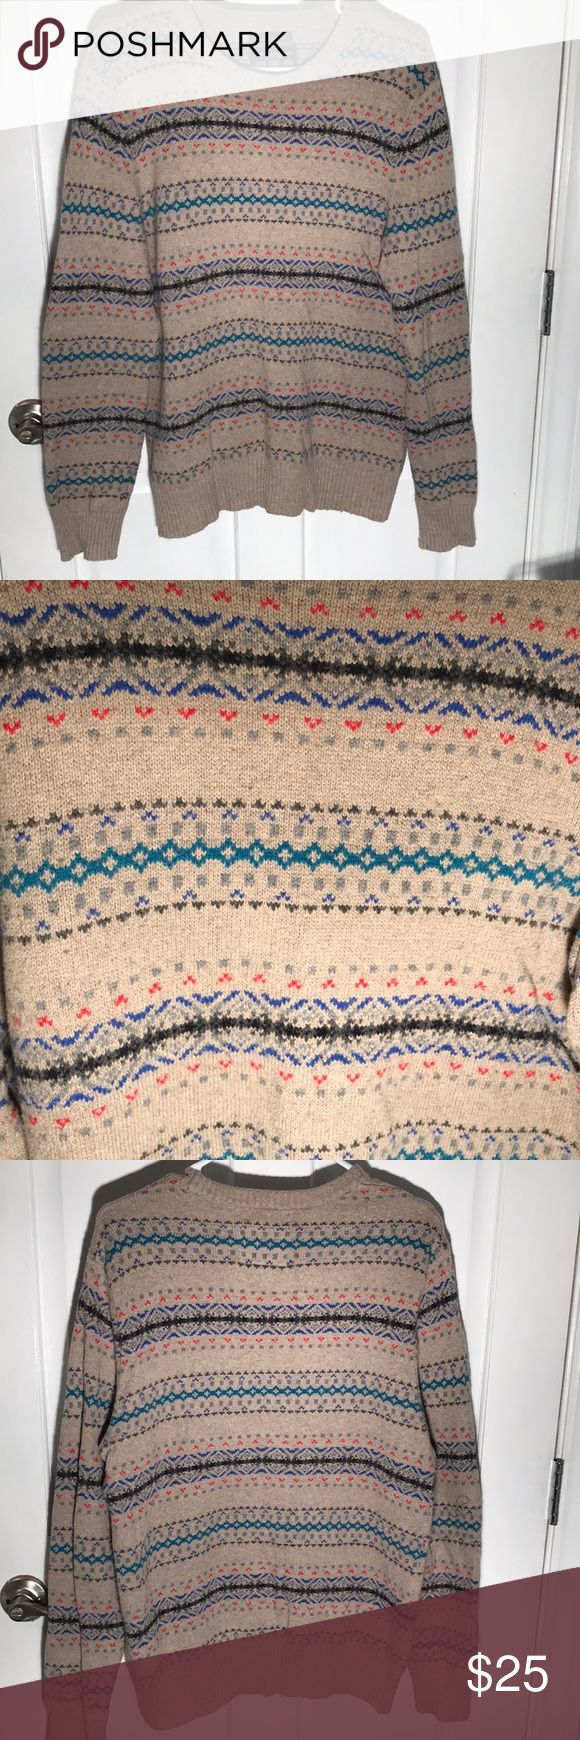 American Eagle Men's fair isle sweater American Eagle men's fair isle crew neck sweater with rubbed cuffs and hem. Great neutral beige background with vibrant blue, teal, red and grey throughout. No pilling, worn only once. American Eagle Outfitters Sweaters Crewneck